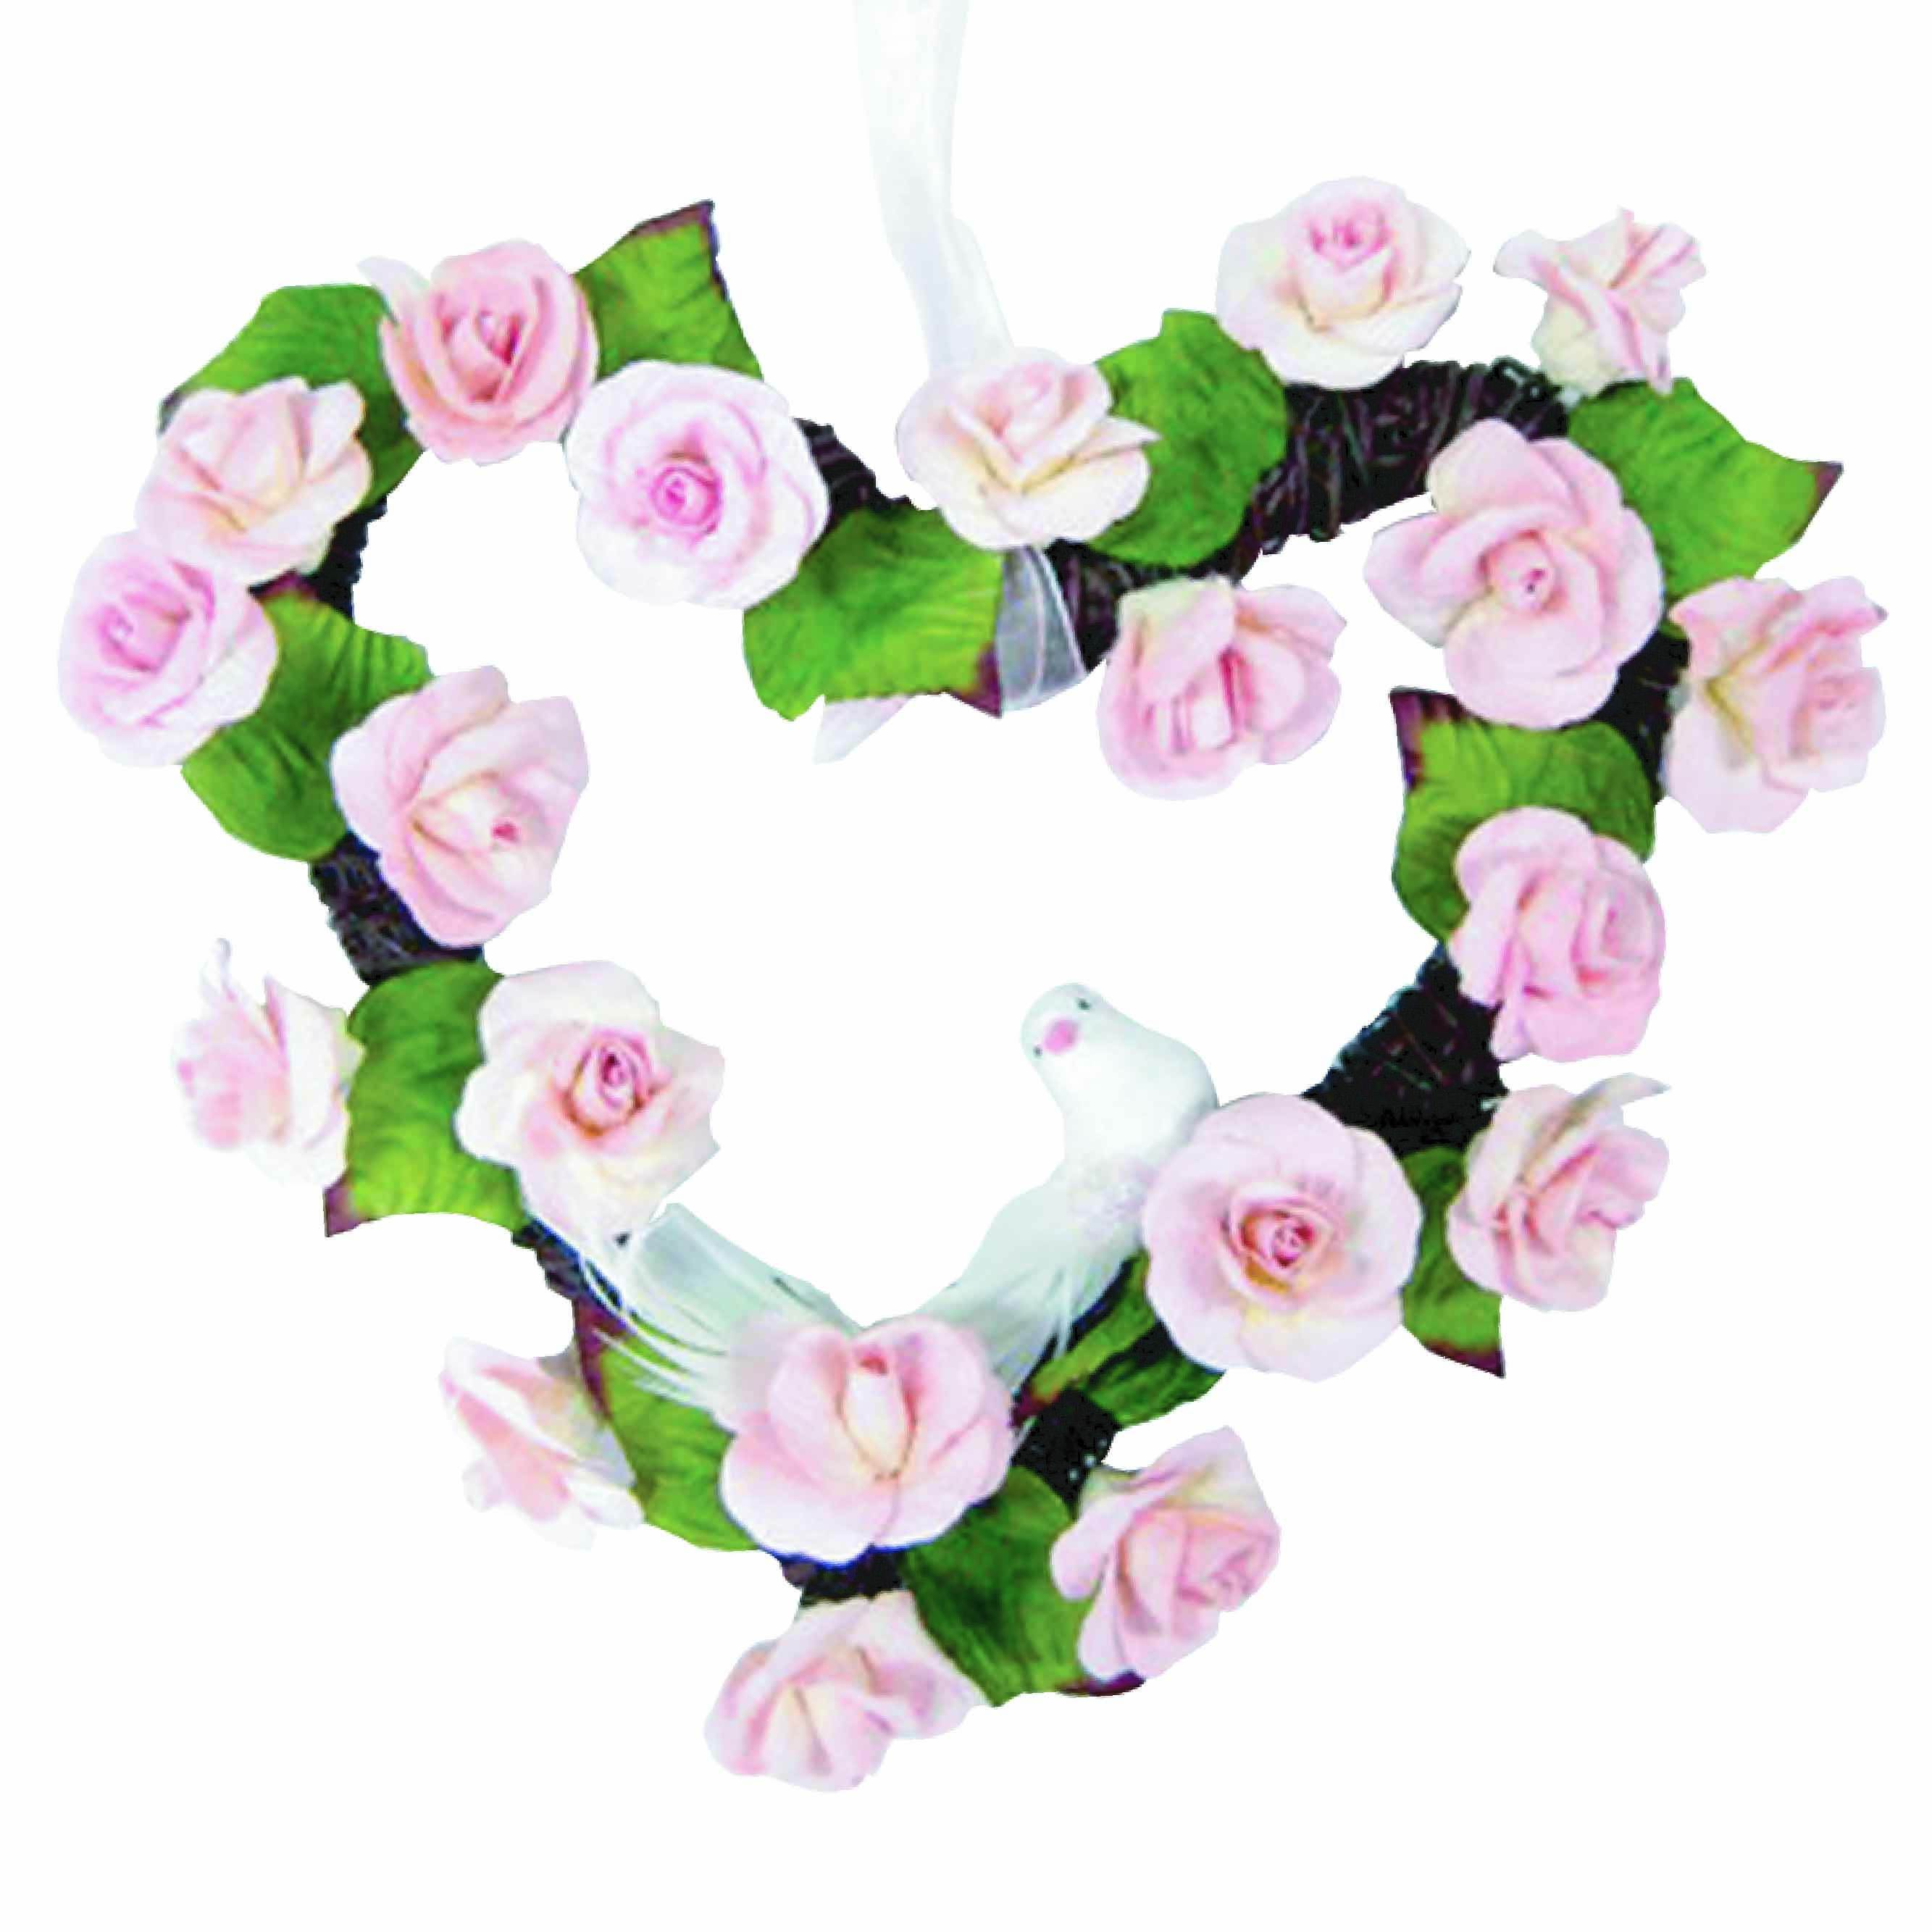 Wholesale Home Decor Mulberry Paper Pink Rose Christmas Wreath from Thailand